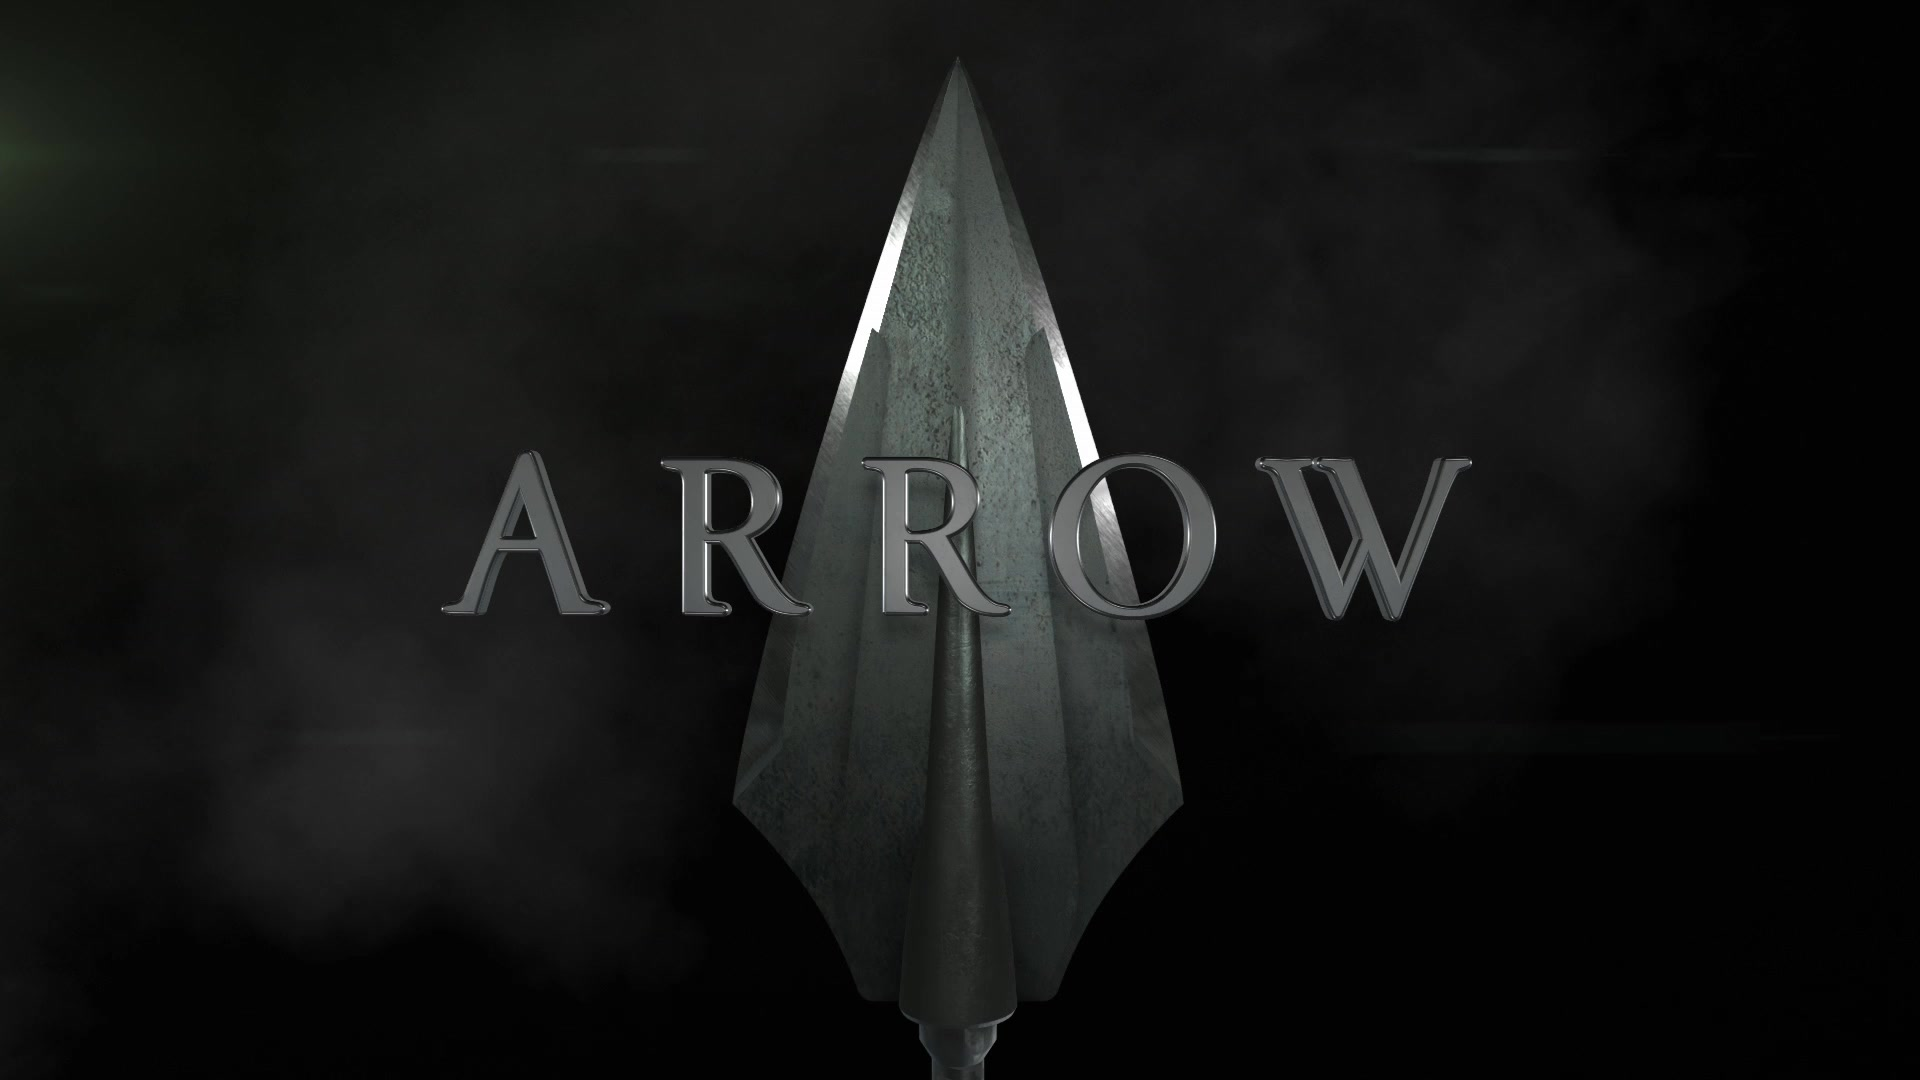 Arrow (TV Series) Episode: Inheritance